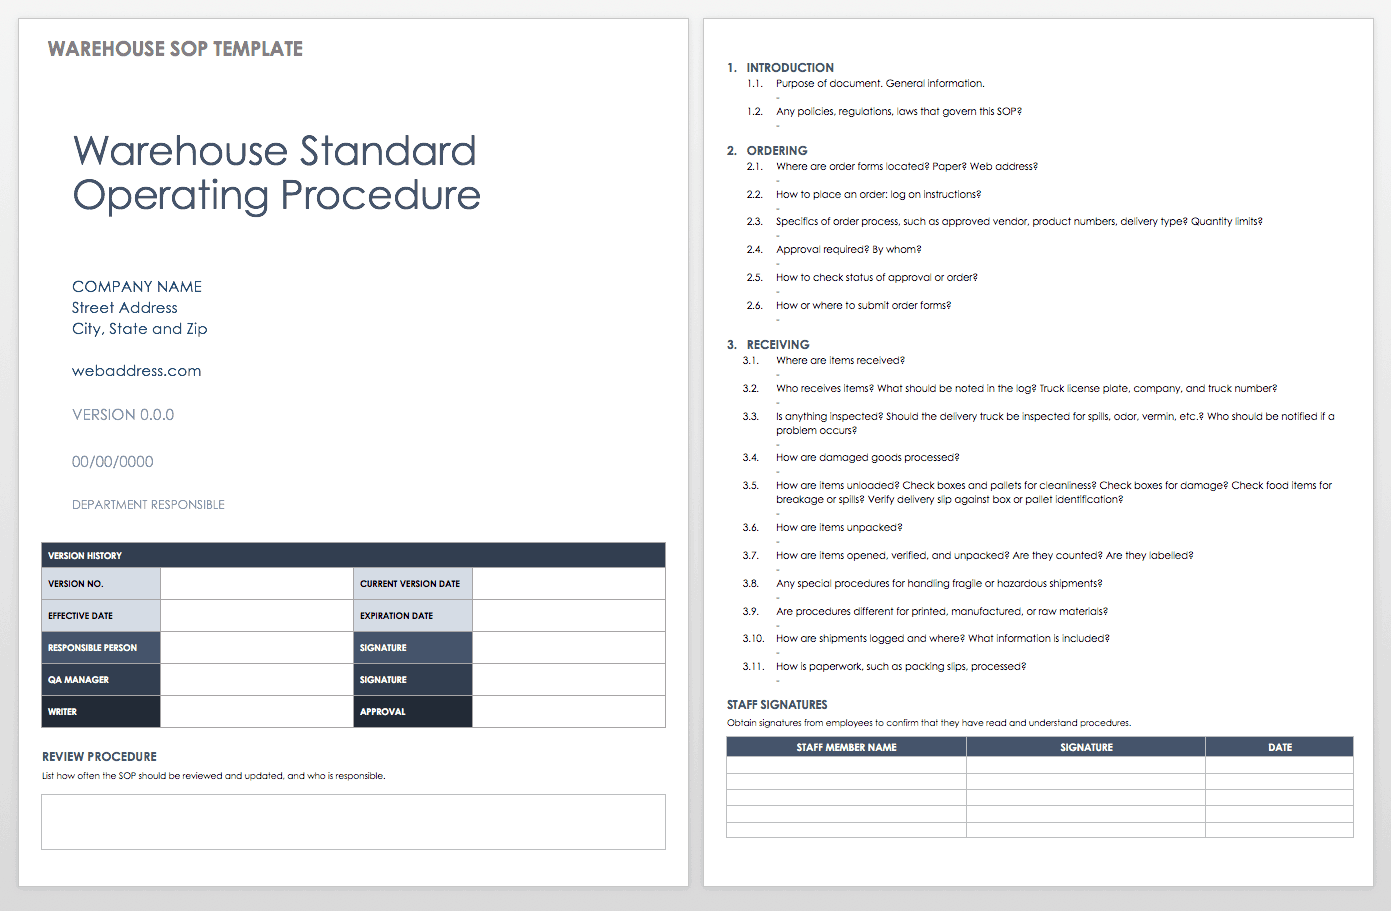 Standard operating procedures manual template free